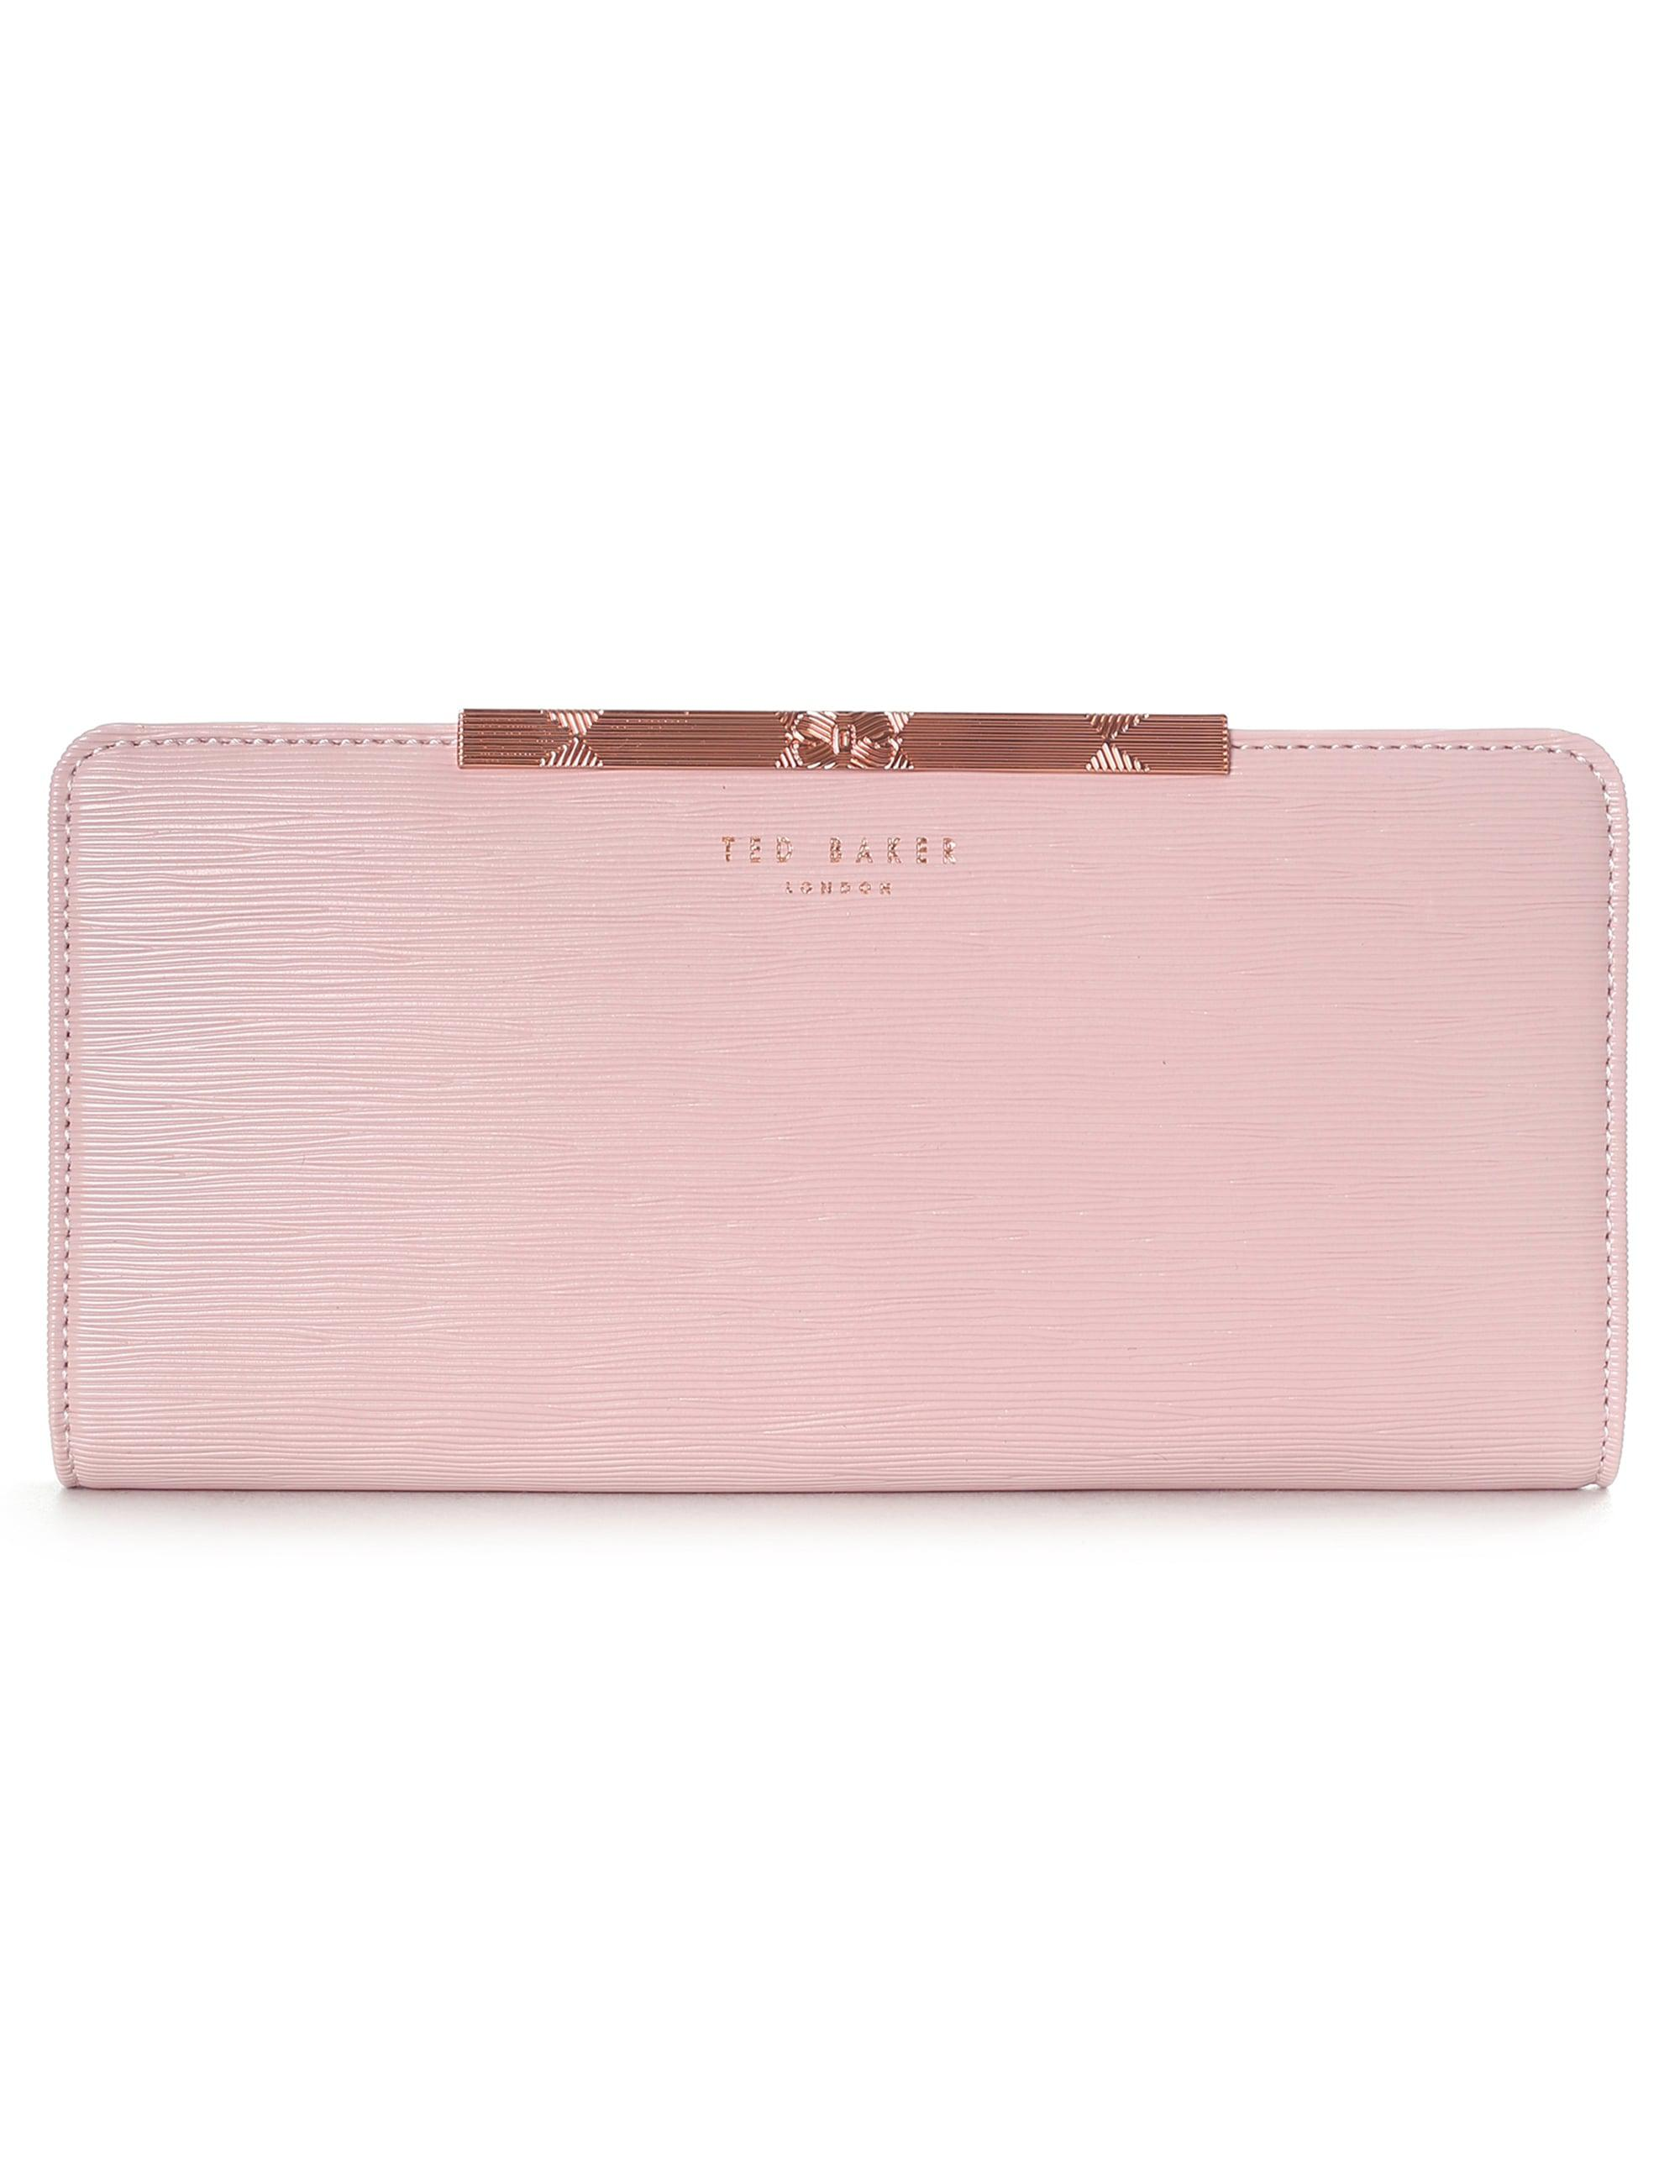 883a6fb42c8 Ted Baker Yasmine Mini Leather Matinee Purse in Pink - Lyst